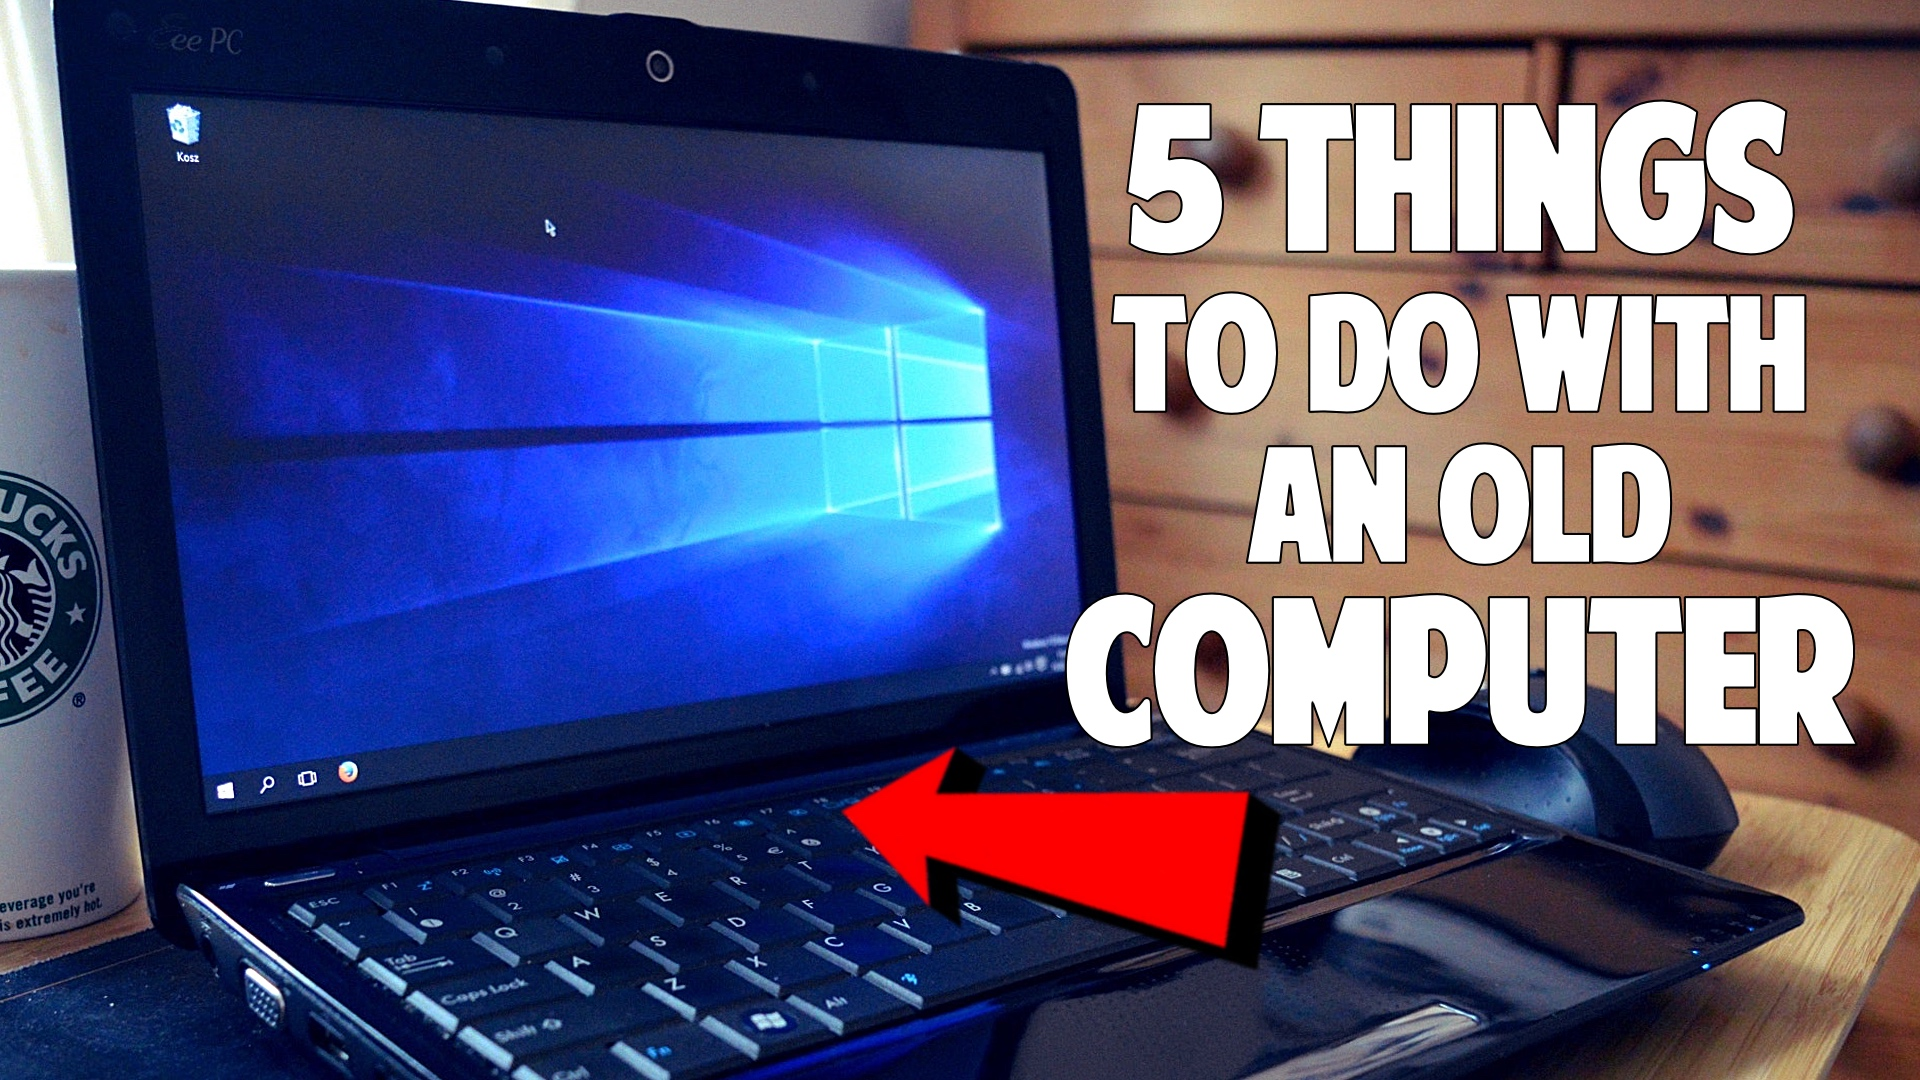 5 things to do with an old computer